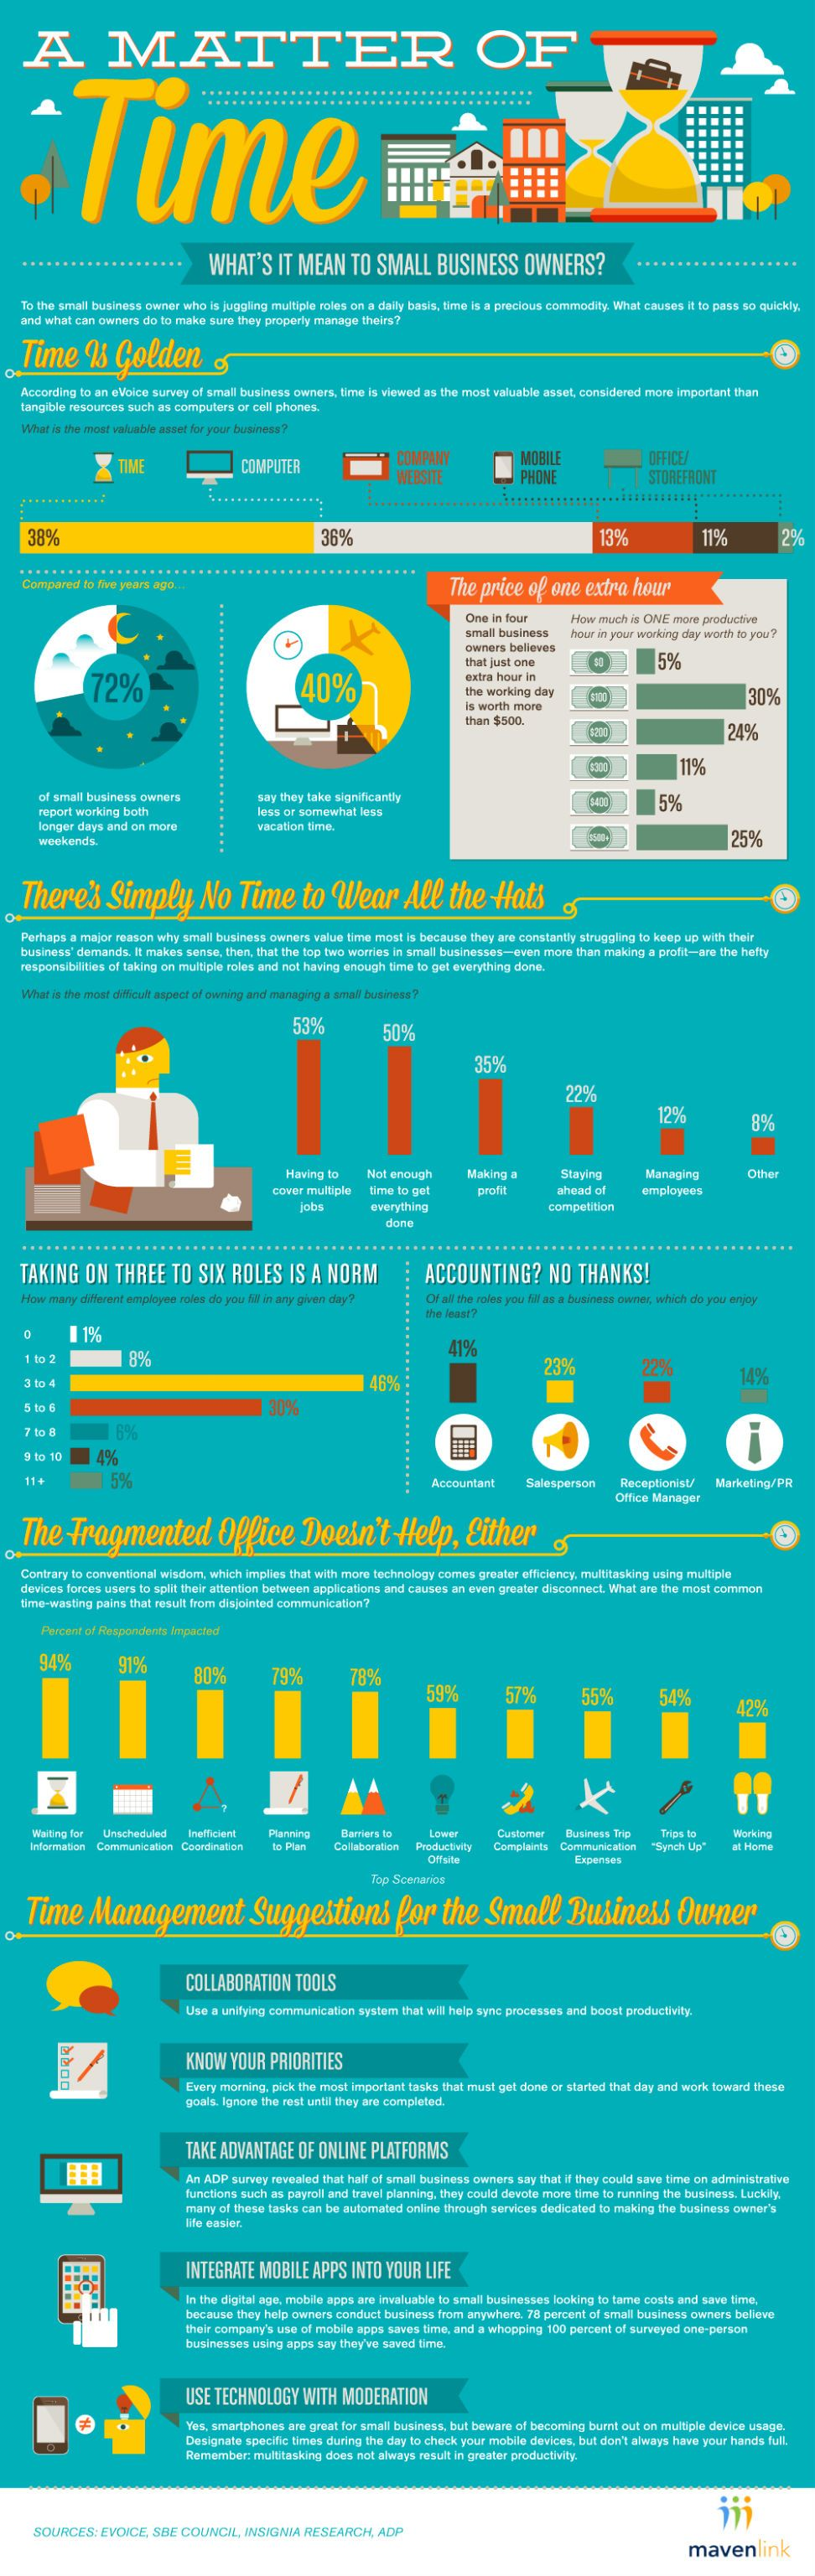 Small Business Owners And Time Management (INFOGRAPHIC). As small business owners spread themselves ever thinner -- tackling from three to six different roles, on average -- effective time management becomes harder and harder to achieve. A new study and infographic by Mavenlink, for example, shows that one in four small business owners believe each productive hour in a day is worth upwards of $500.